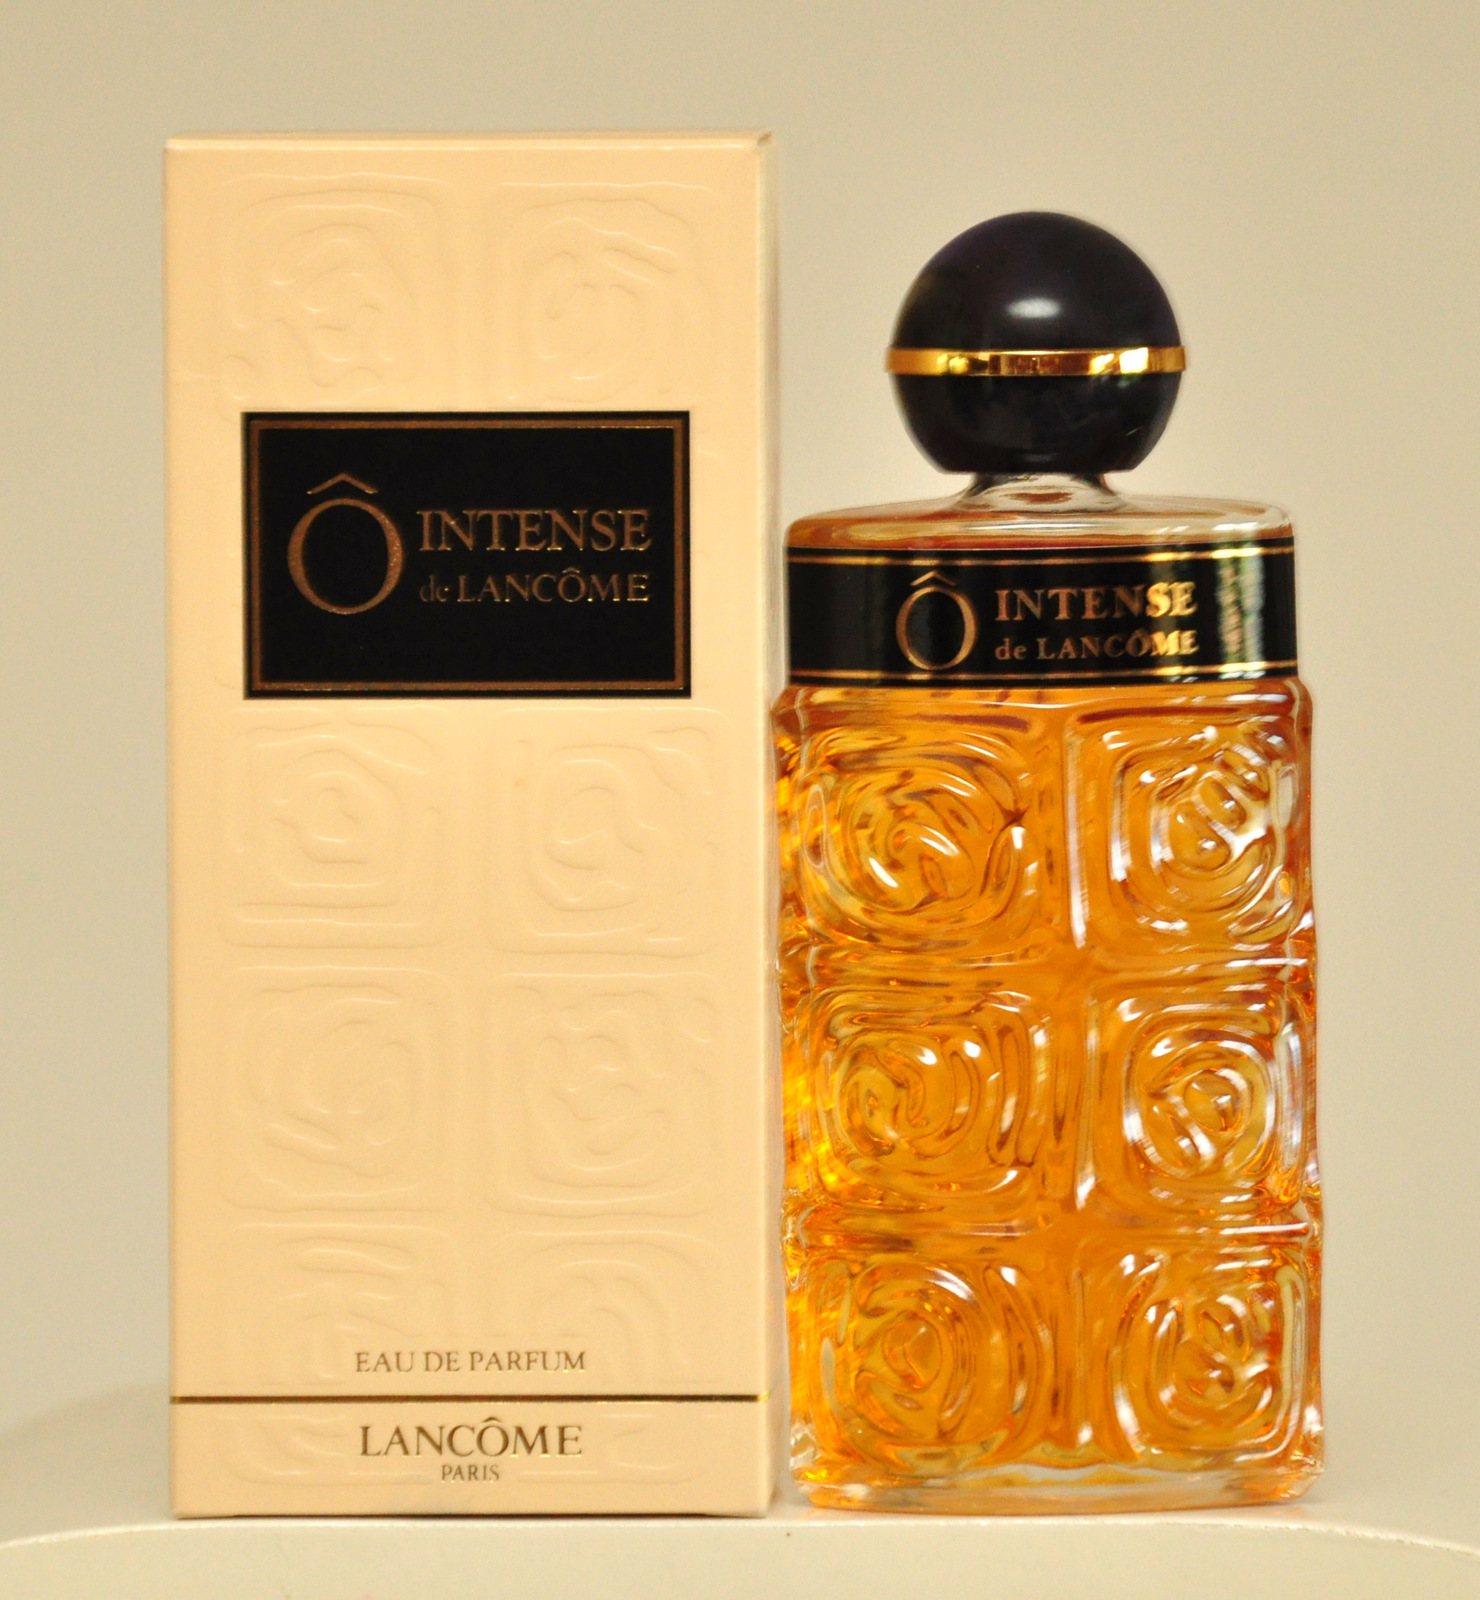 Primary image for Lancome O Intense Eau de Parfum Edp 100ml 3.4 Fl. Oz. Splash Vintage Old 1986